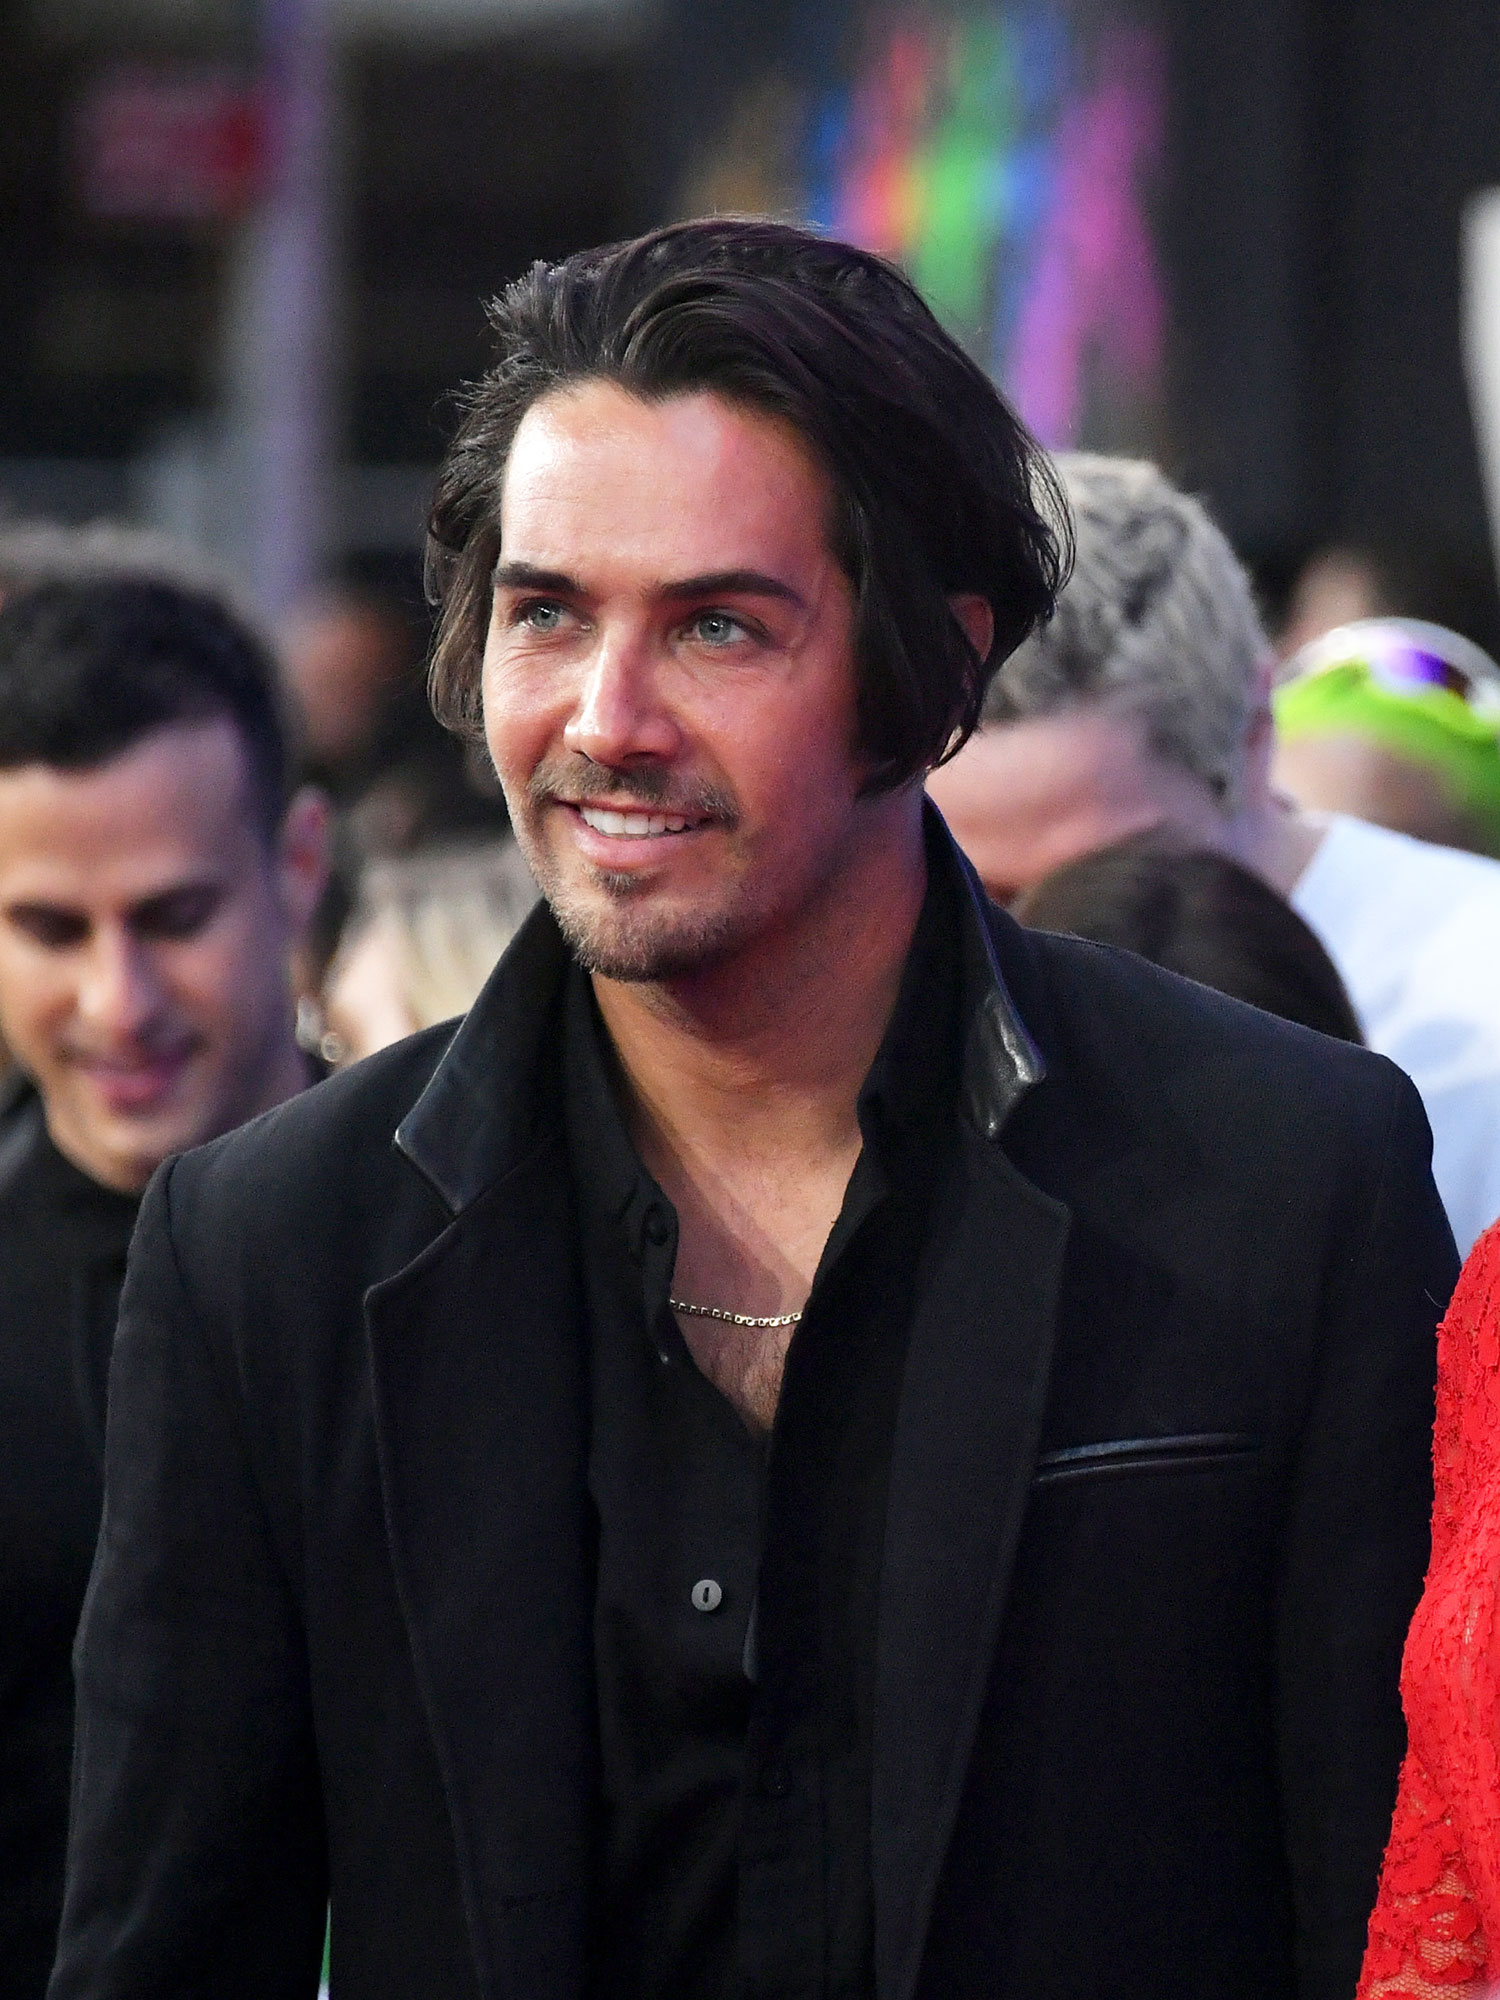 """Justin Bobby Brescia the hills new beginnings VMAs 2018 - Justin Bobby, 36, has been working as a musician and hairdresser since the show ended in 2010, but he will appear, alongside his ex Patridge. The show will follow the cast's """"personal and professional"""" lives."""